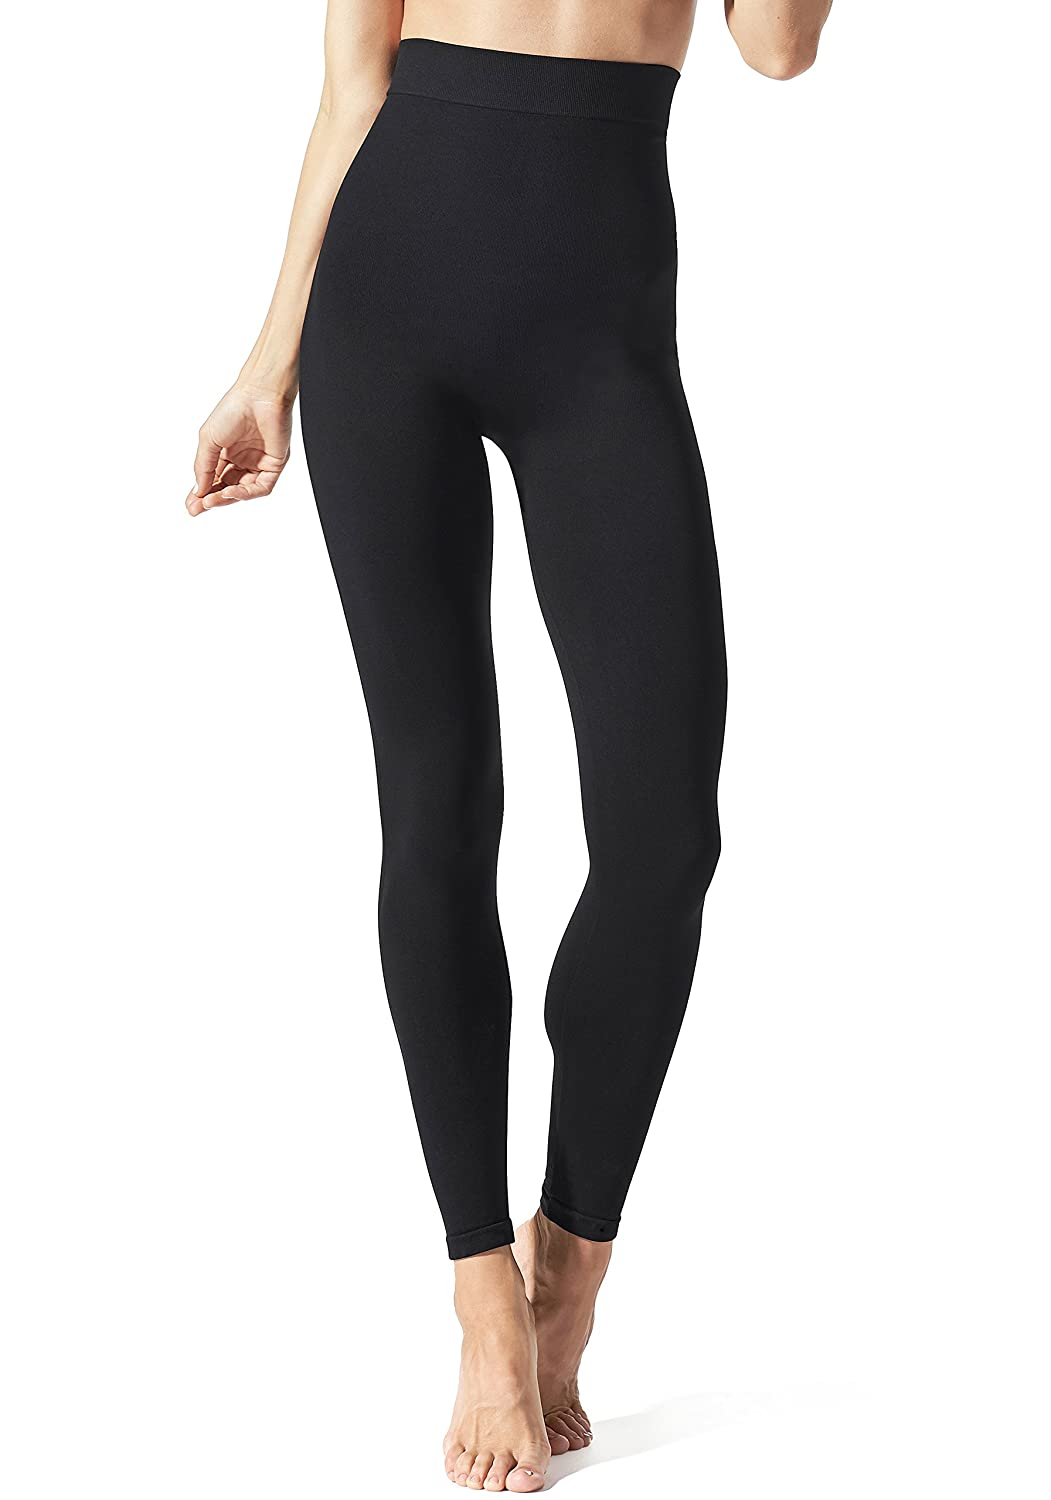 6b57b2e0695dd Amazon.com: BLANQI Everyday Highwaist Postpartum + Nursing Support Leggings:  Clothing